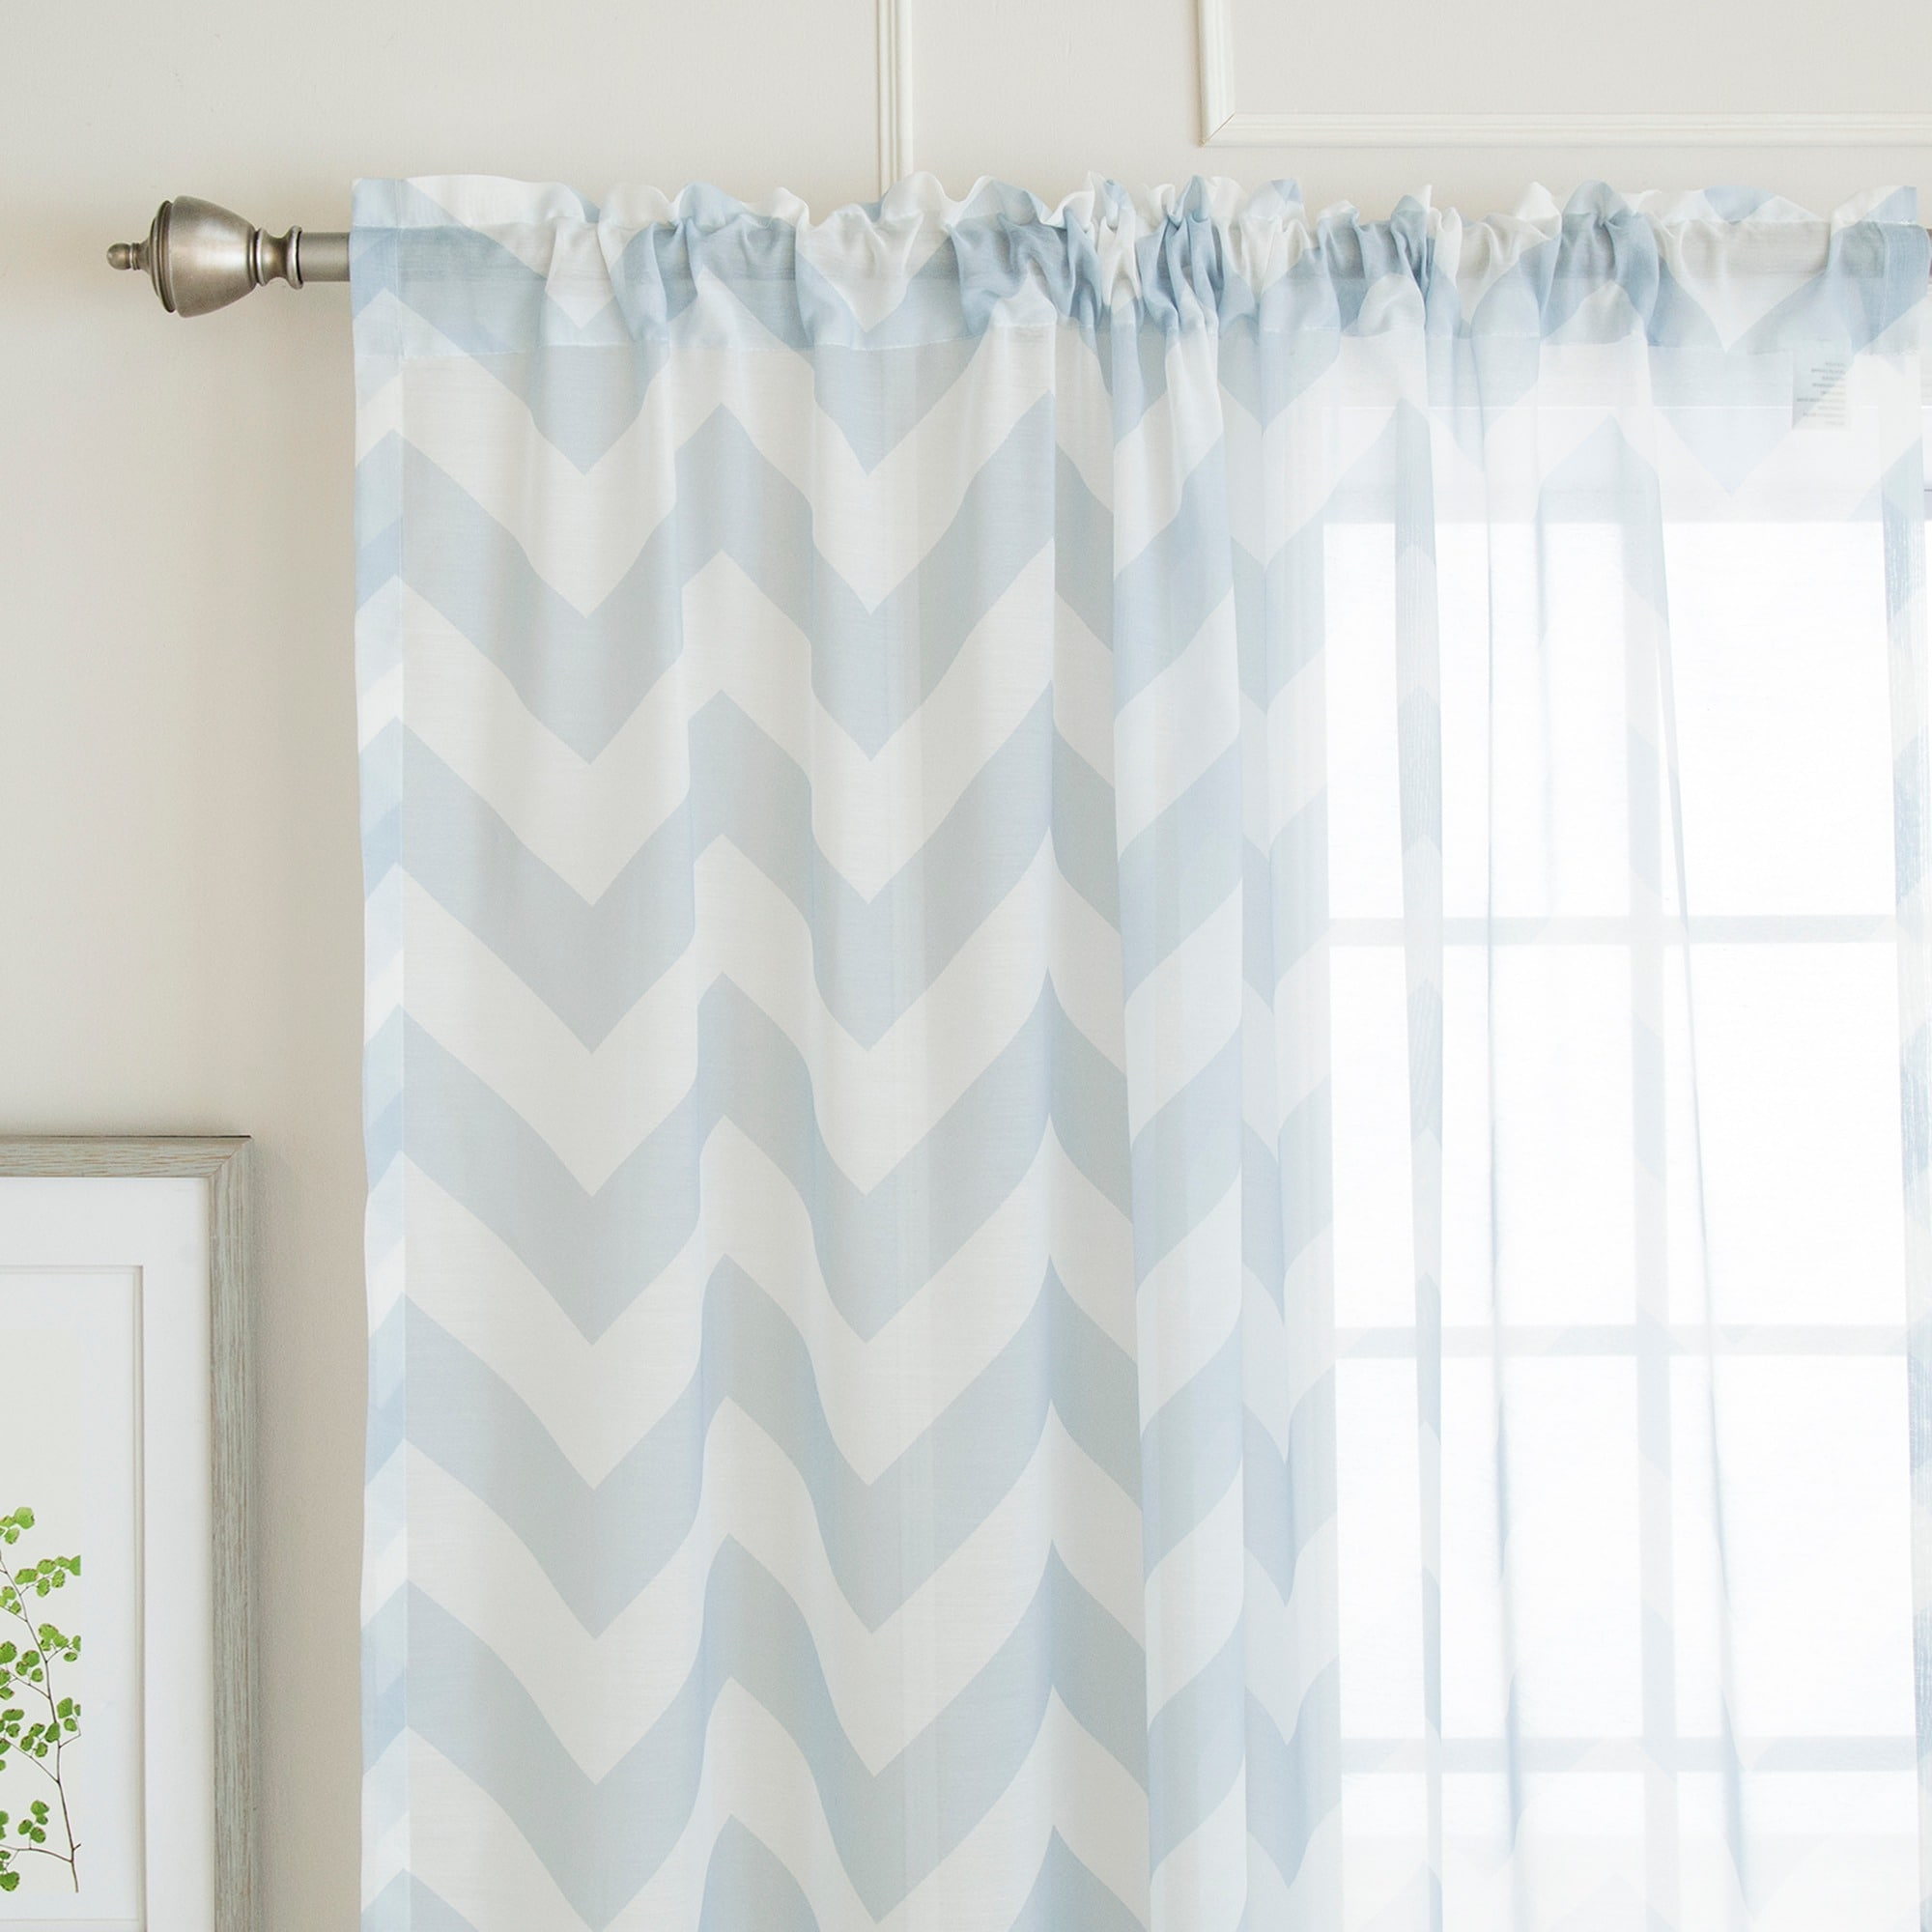 jcpenney rod wood rods double photo of drapery and curtains inch att return ikea x curtain